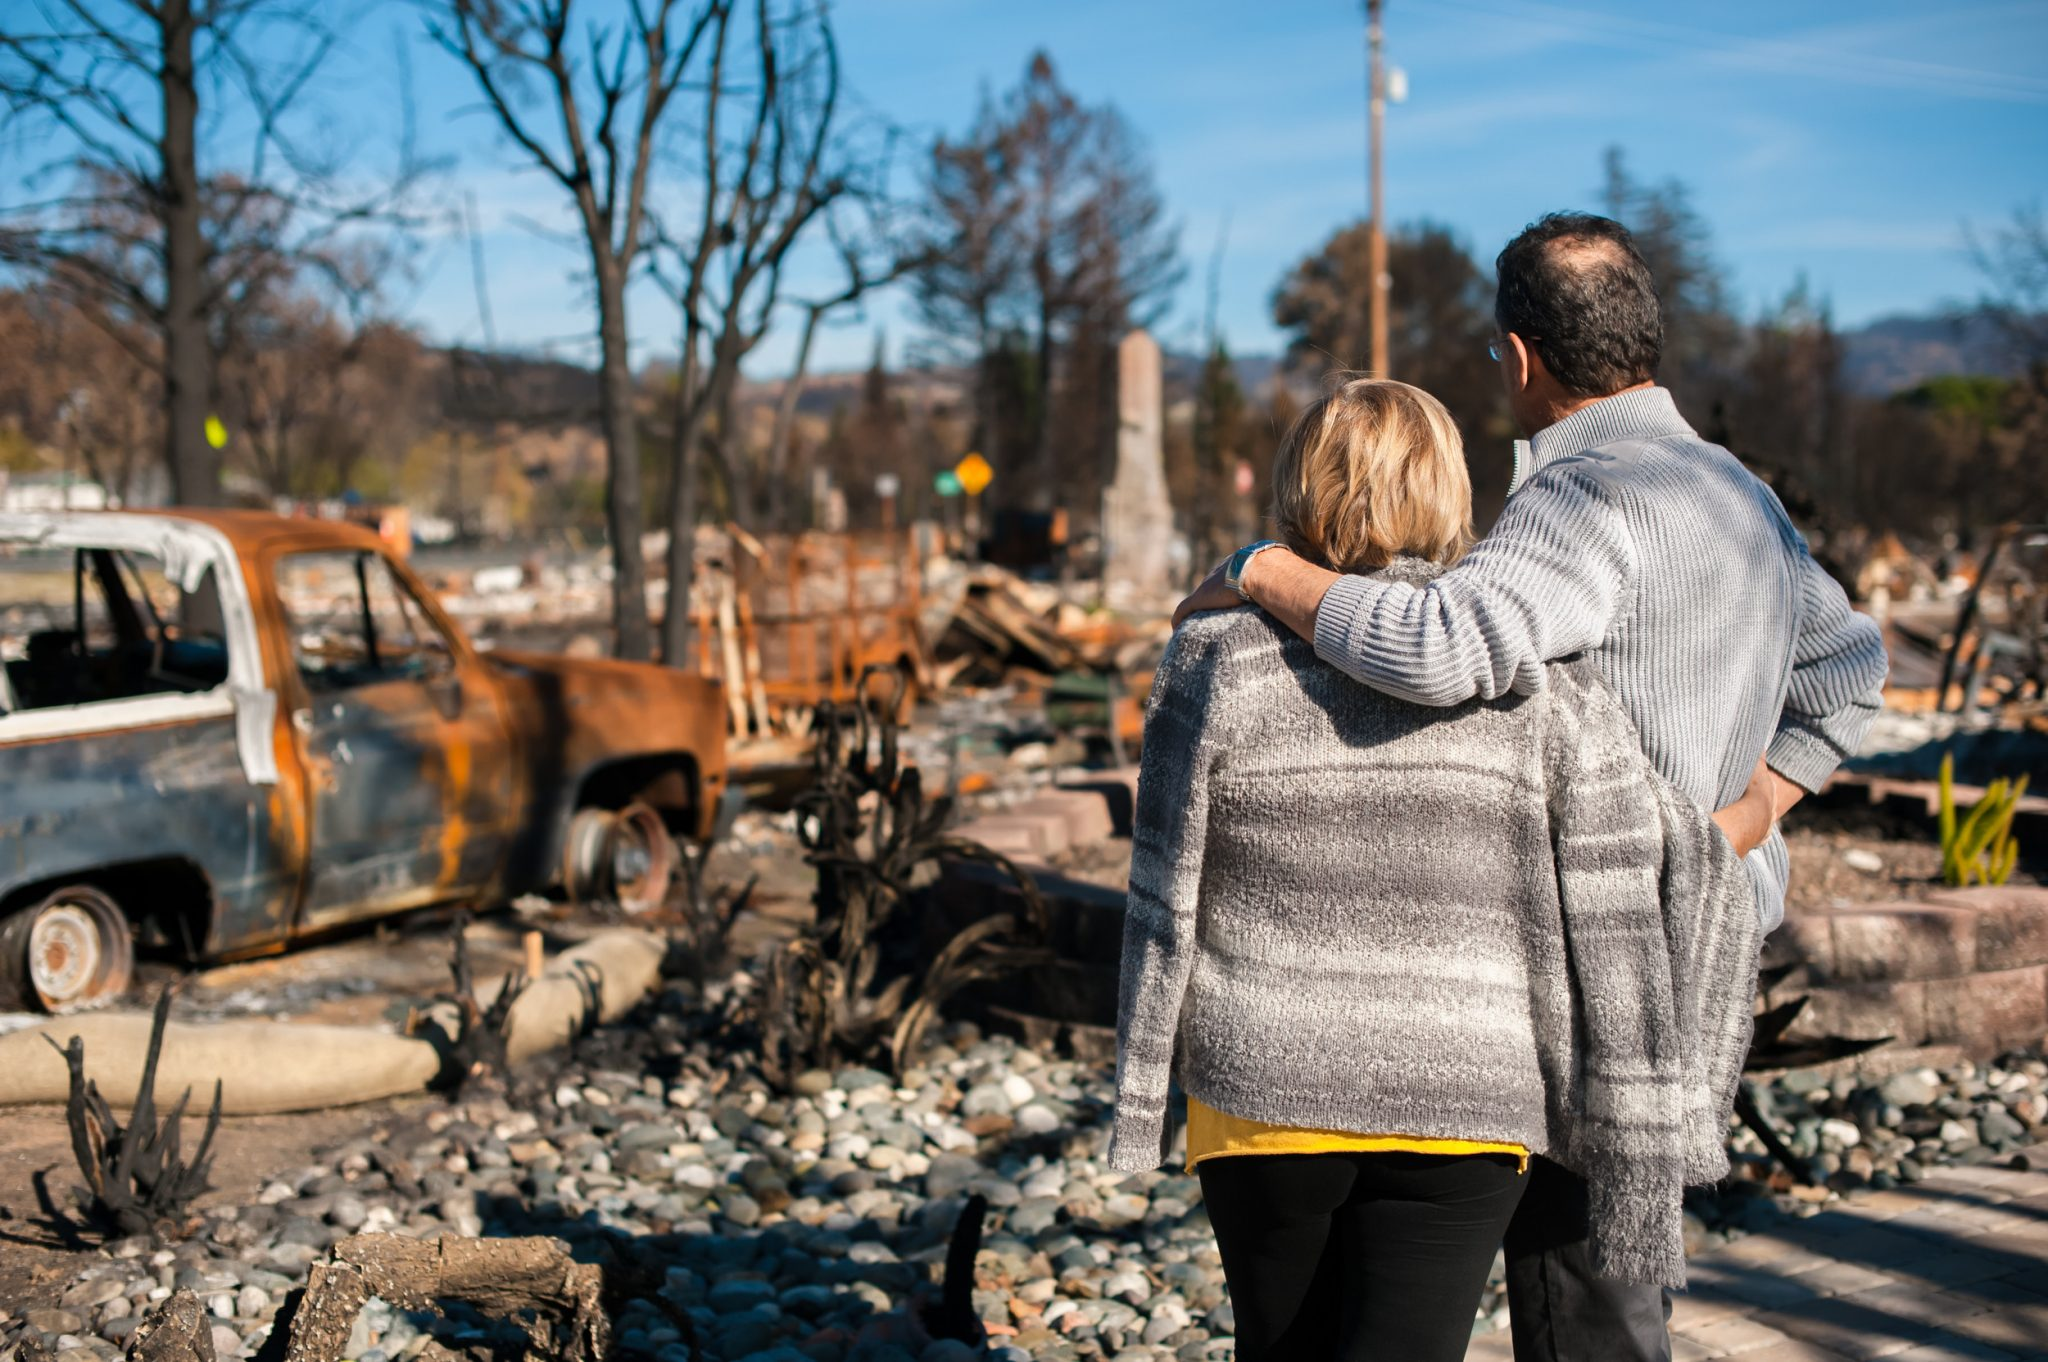 Travel trailers end a nomadic existence for some Camp Fire victims